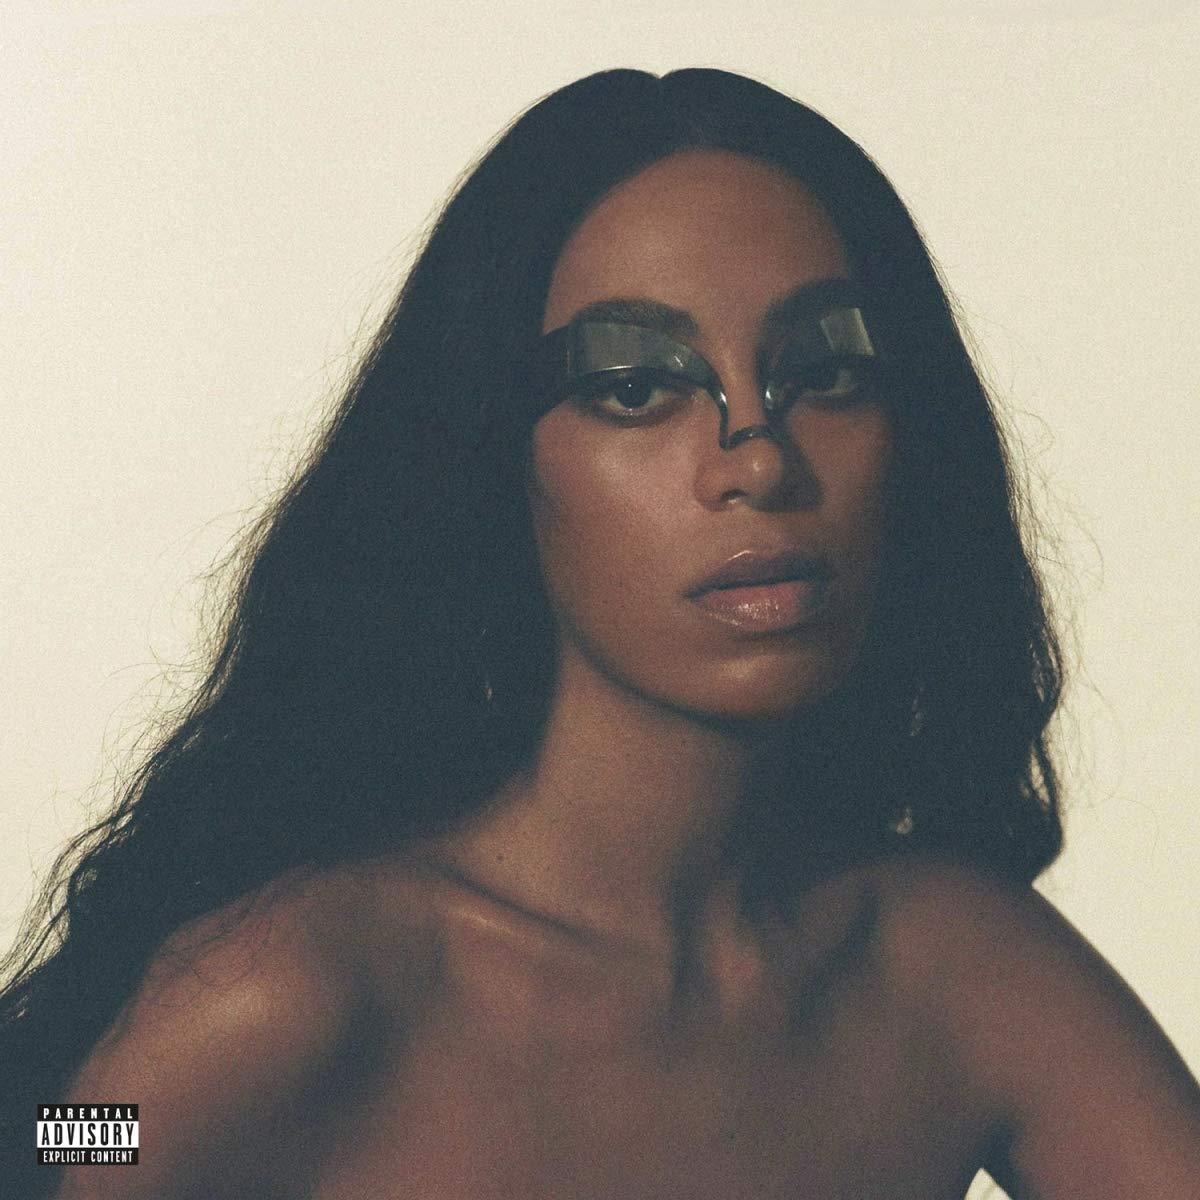 Solange - When I Get Home [LP] (Crystal Clear Translucent 150 Gram Vinyl, printed inner sleeve) - Urban Vinyl | Records, Headphones, and more.